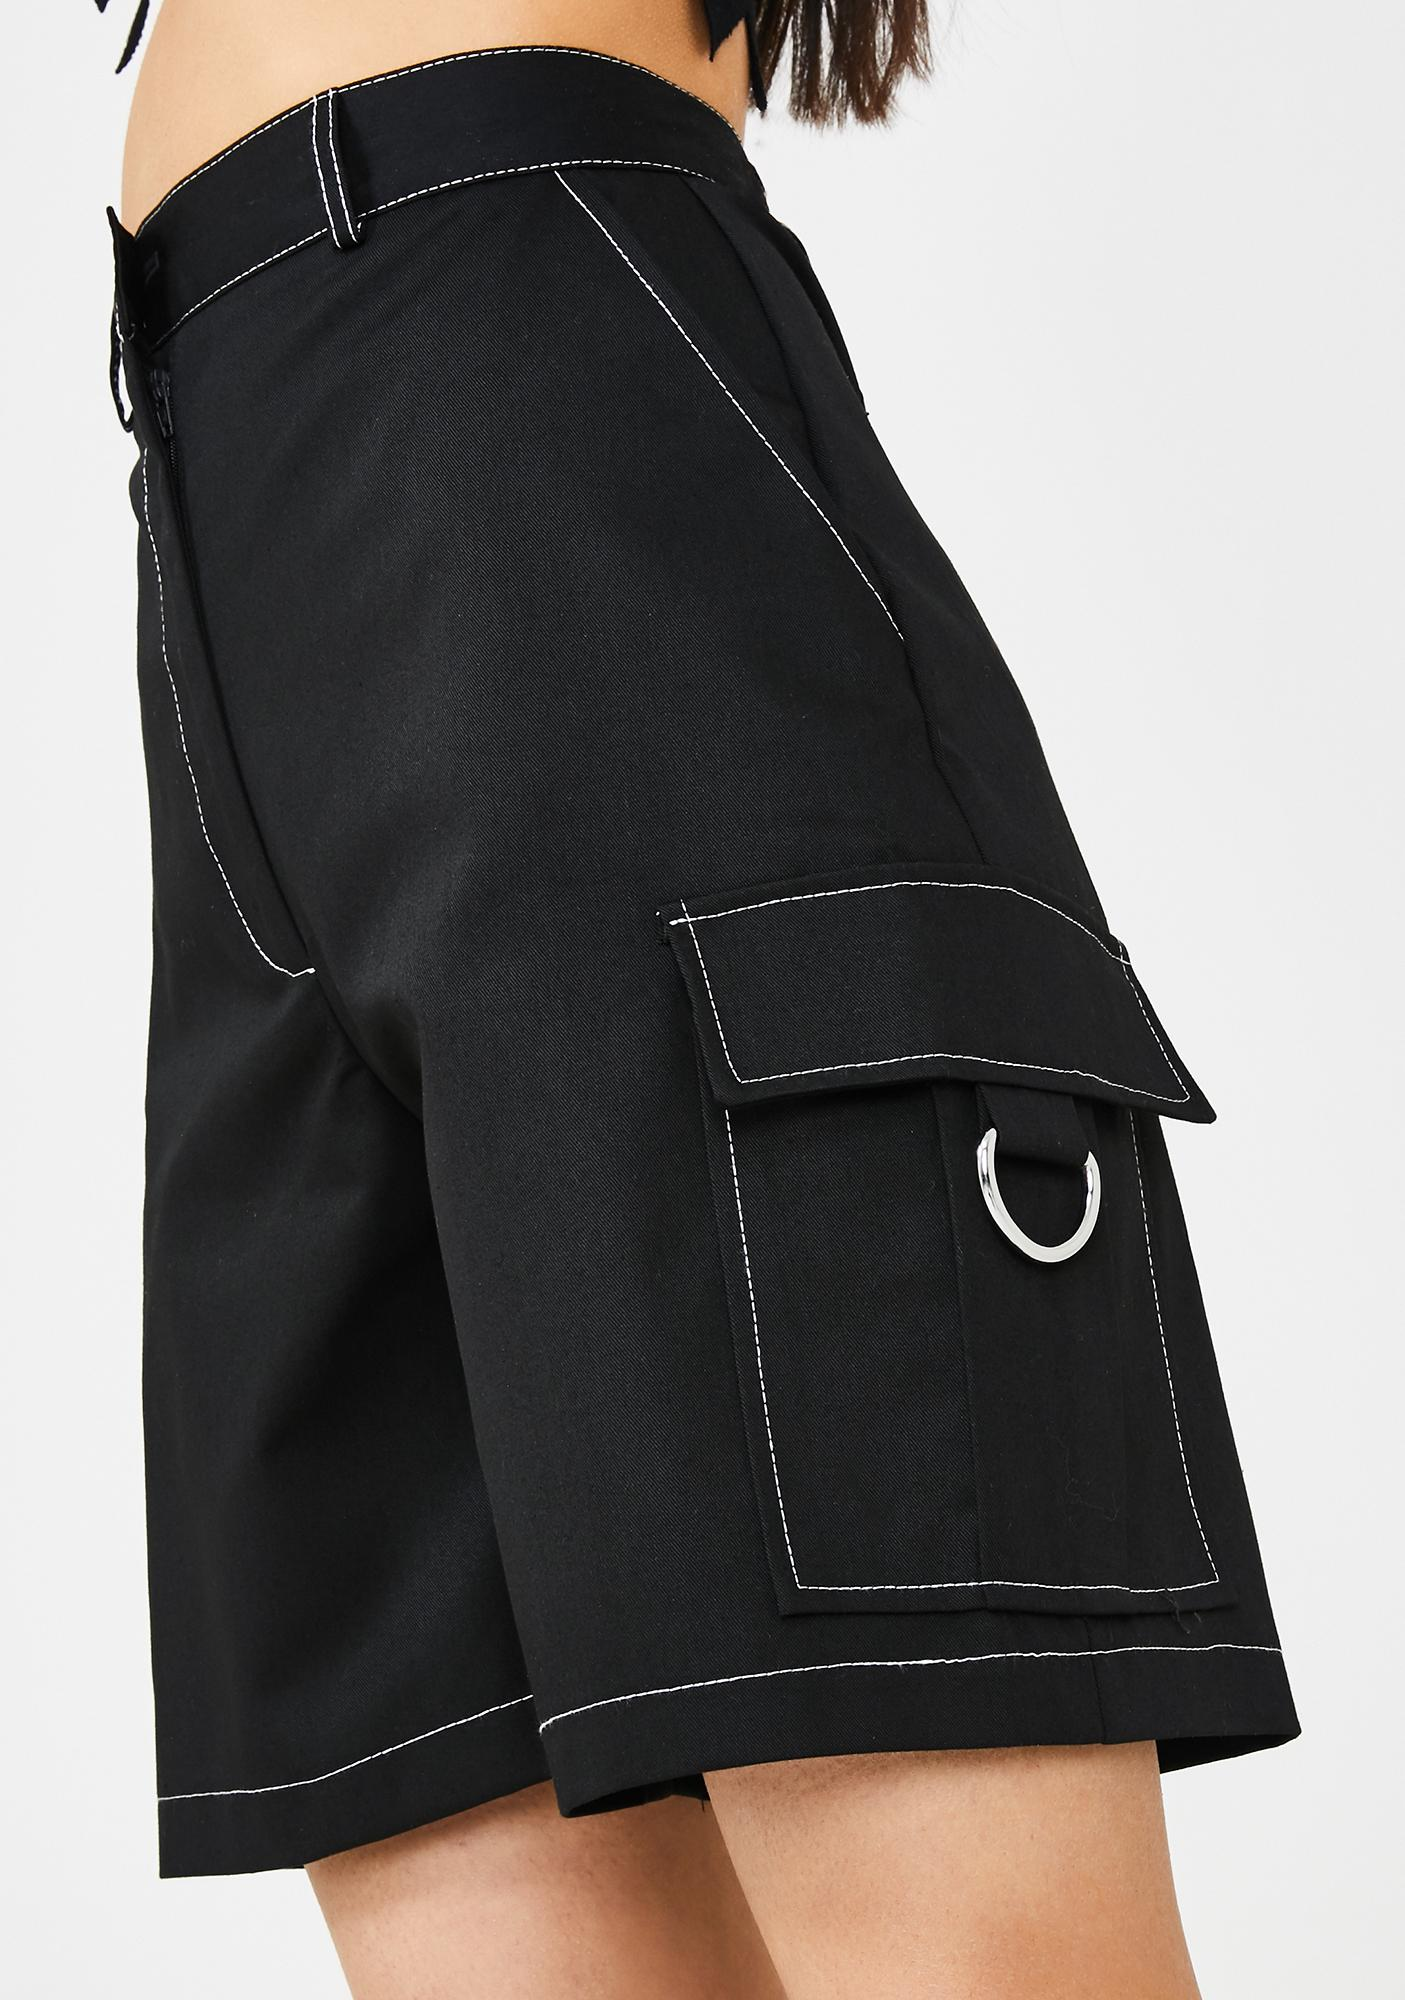 The Ragged Priest Absent Combat Shorts